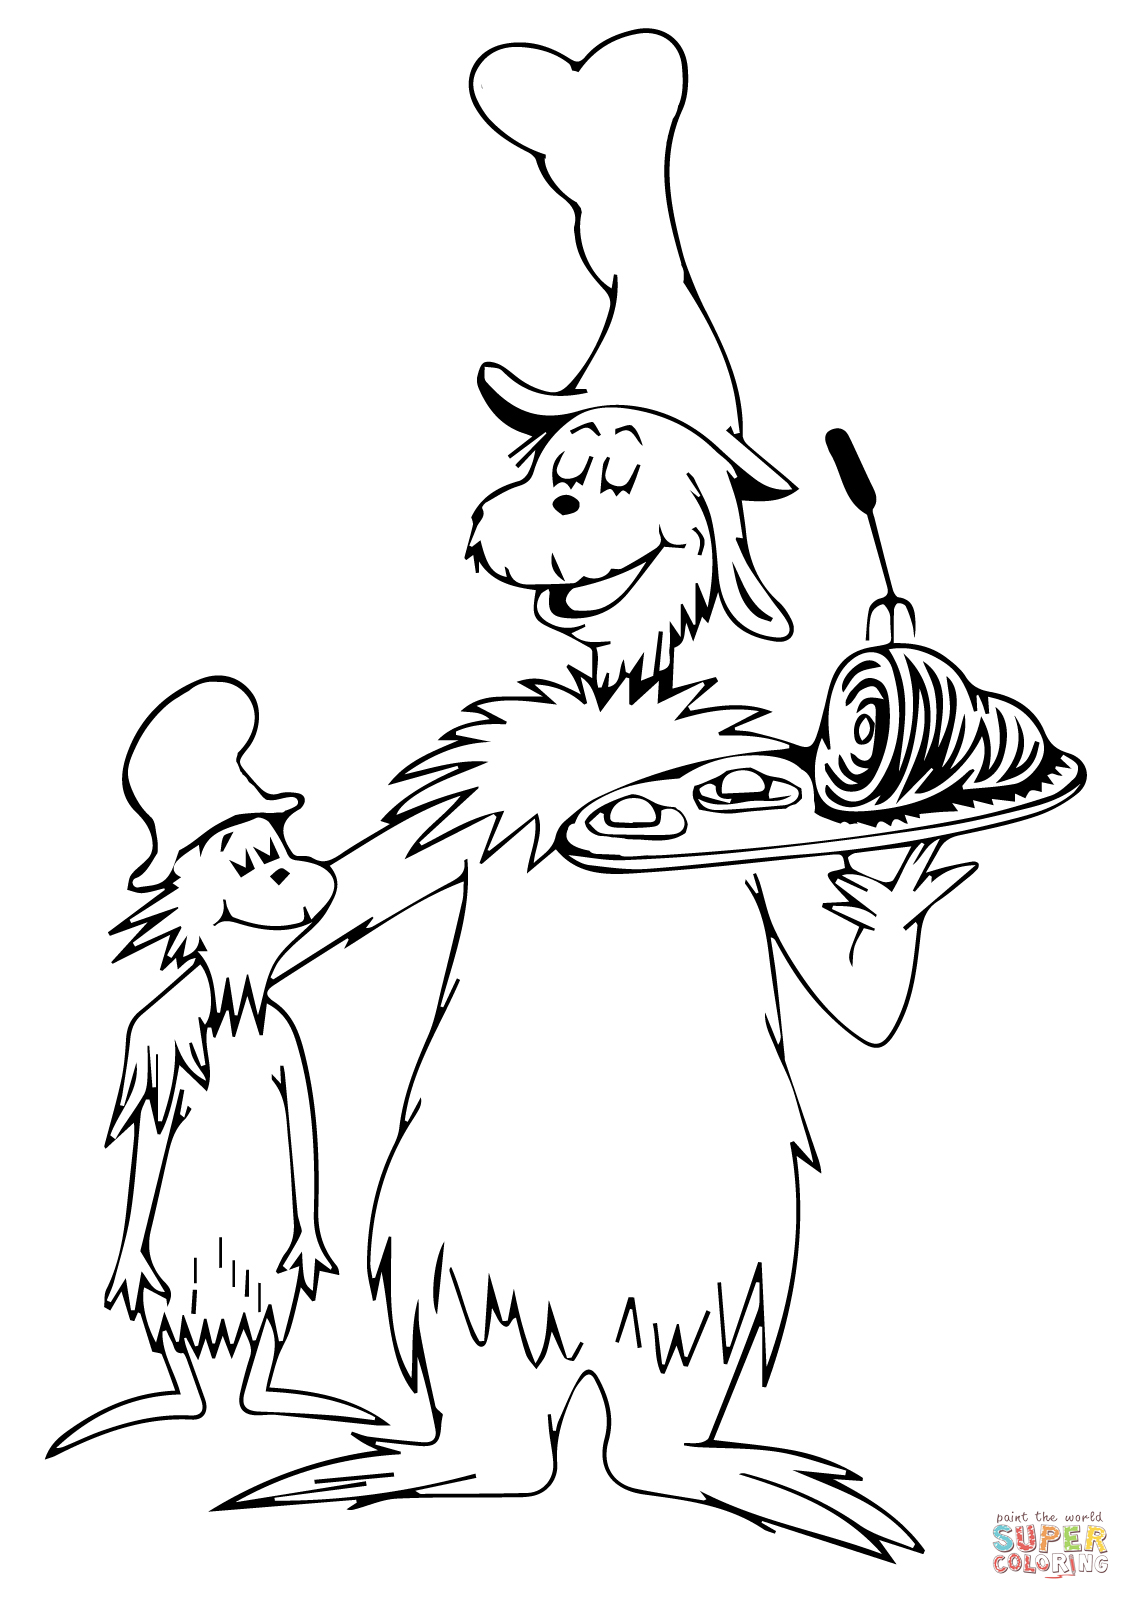 coloring pages of dr seuss - photo#22